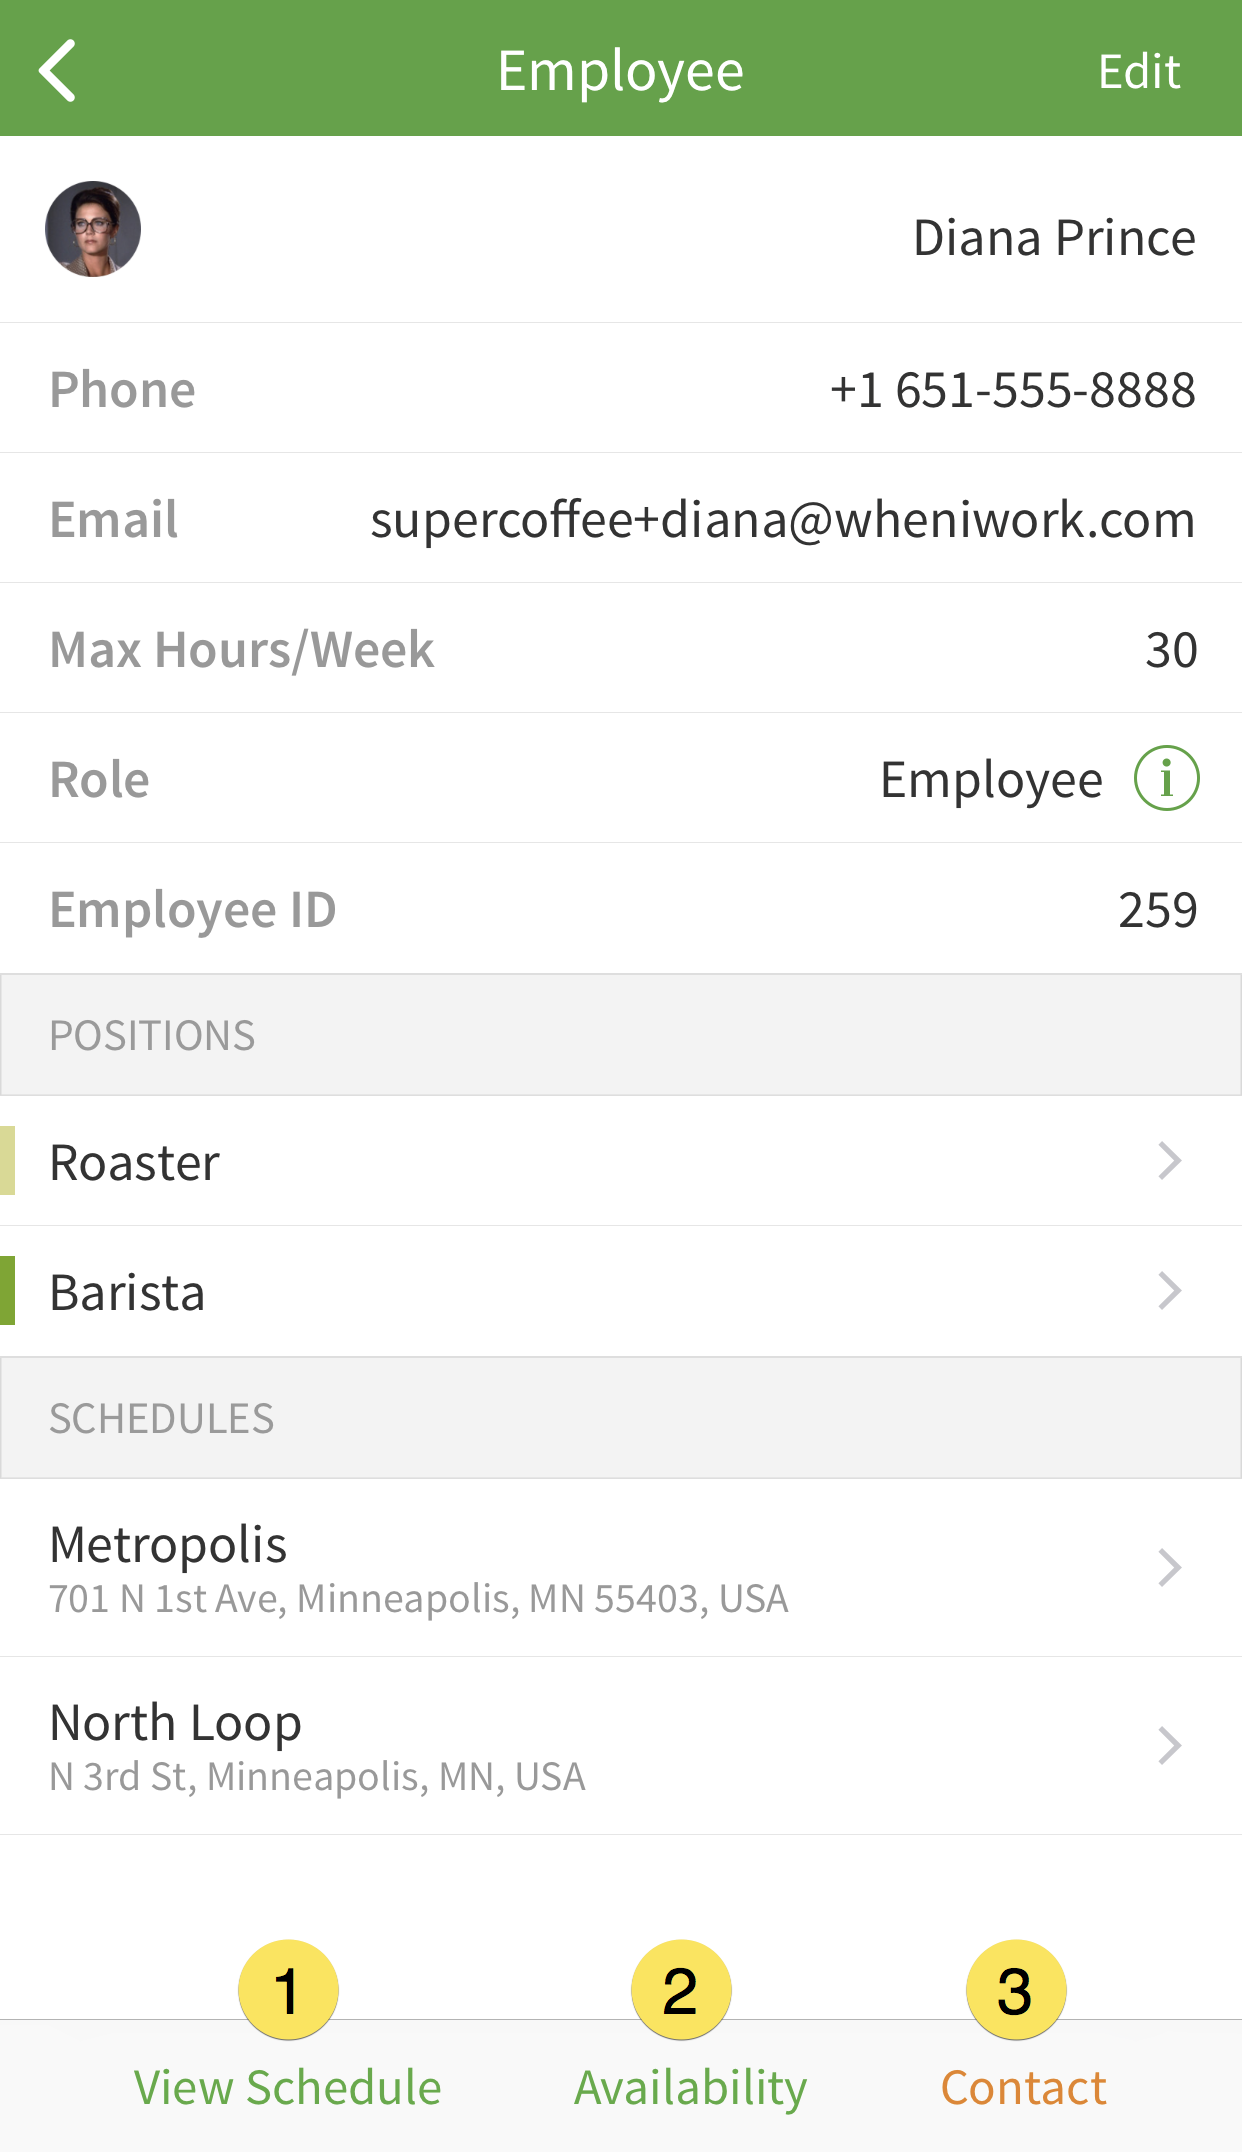 Employee view options